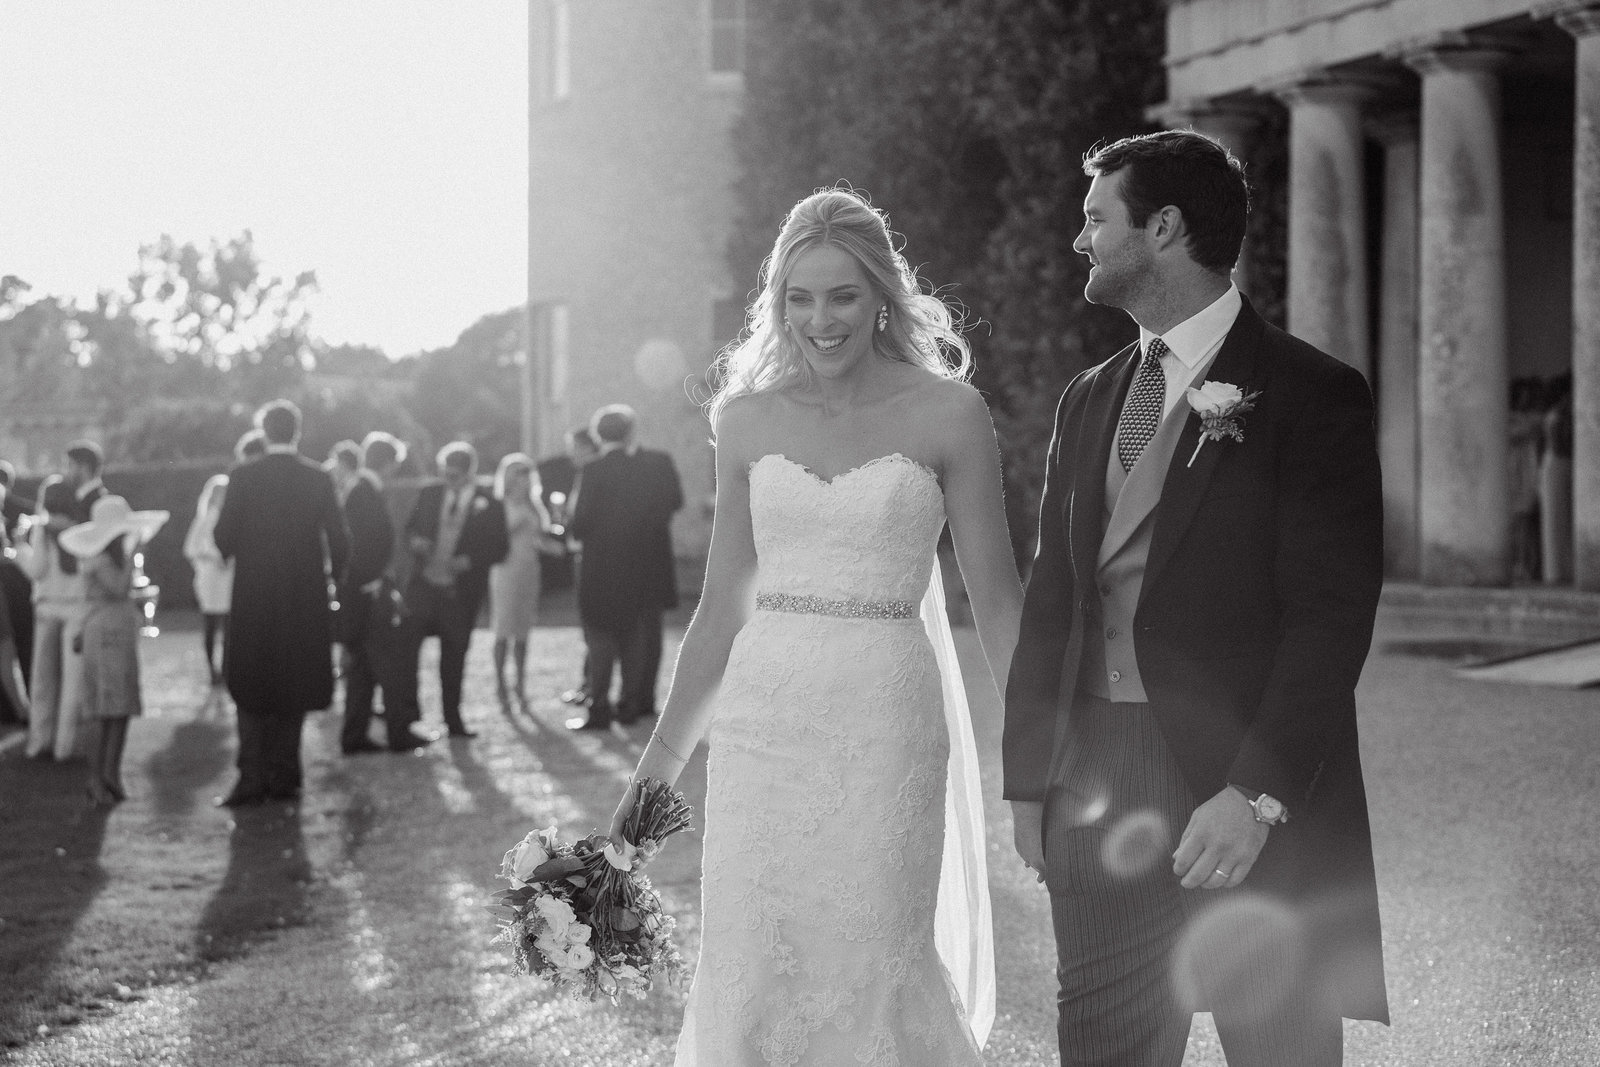 Beautiful black and white photo showing the bride and groom walking with Goodwood House and guests in the background on their wedding day during golden hour with sun flare and captured by the talented west sussex wedding photographer Nicci at Adorlee